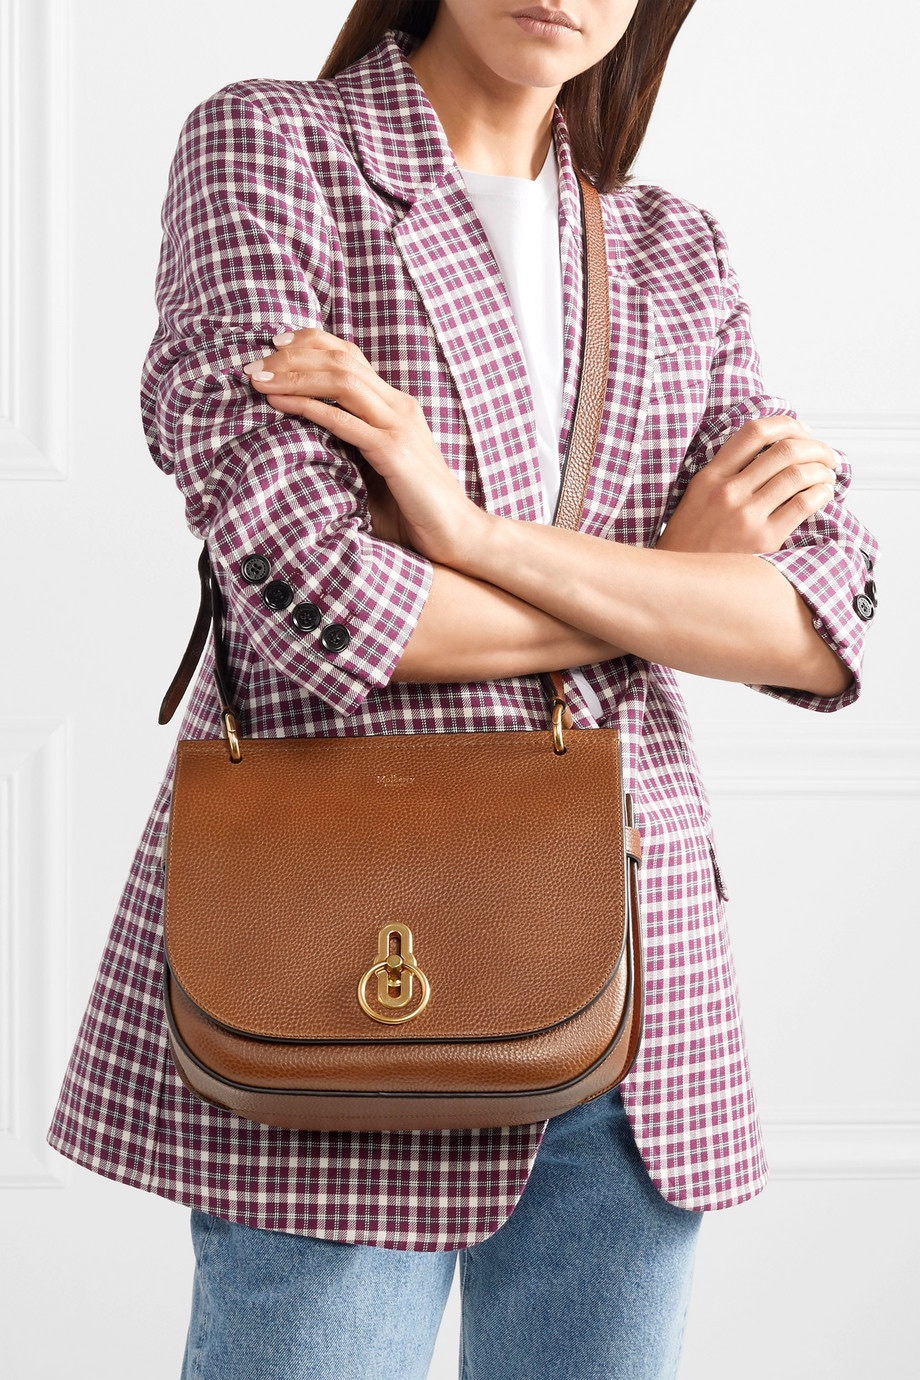 Mulberry tan leather saddlebag